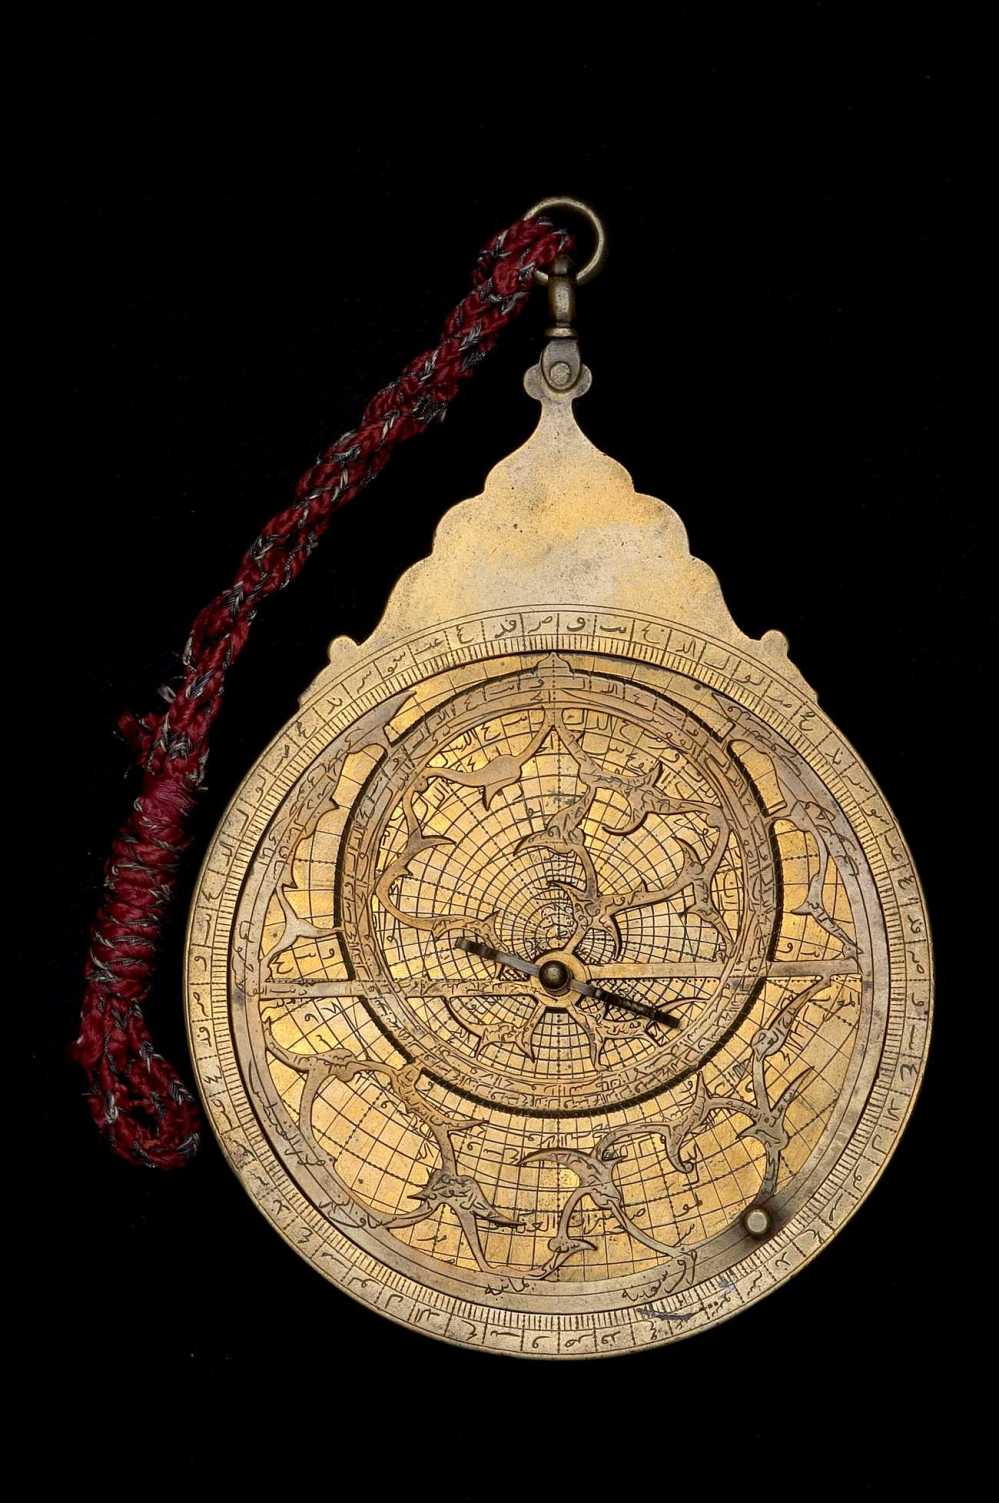 preview image for Astrolabe, by Diya al-din ibn Qaim Muhammad, Indo-Persian, 1653/4